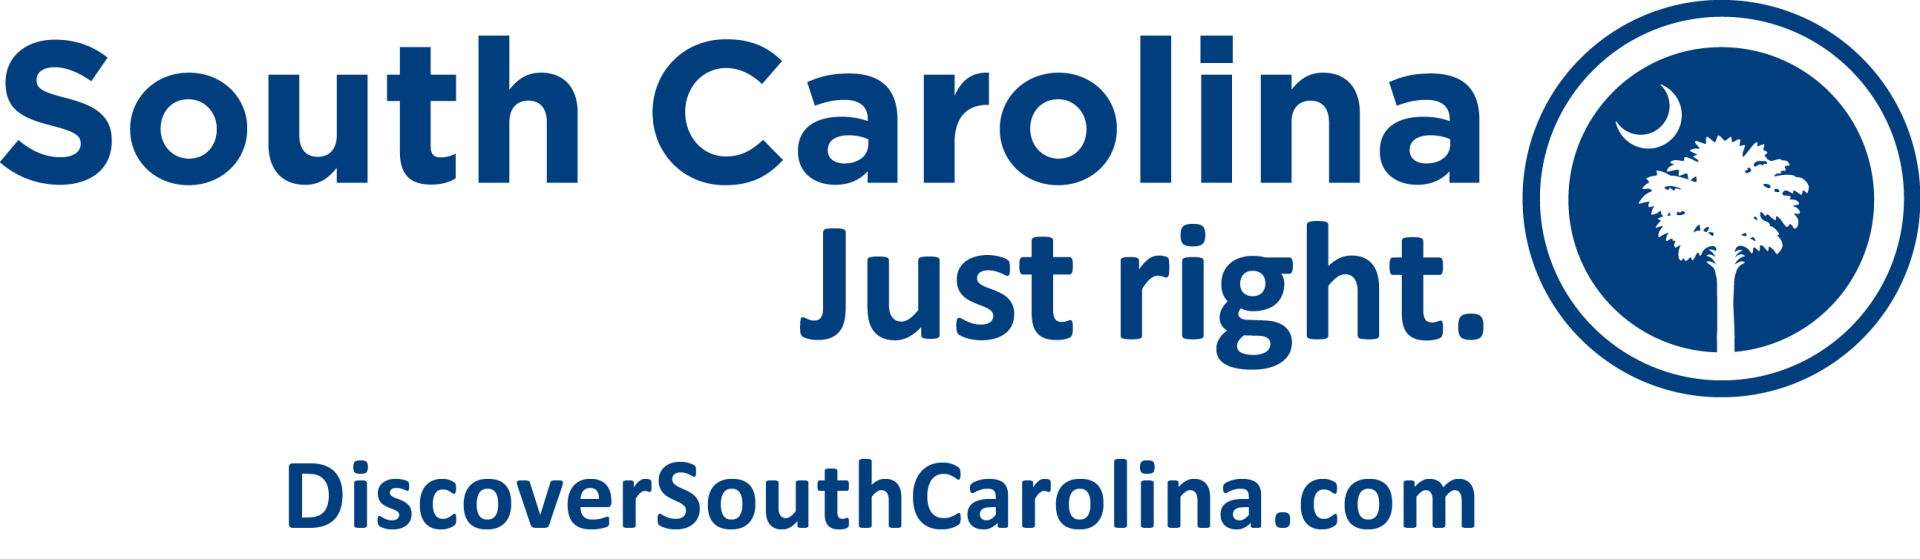 SC-Just-Right-URL-Logo-transparent